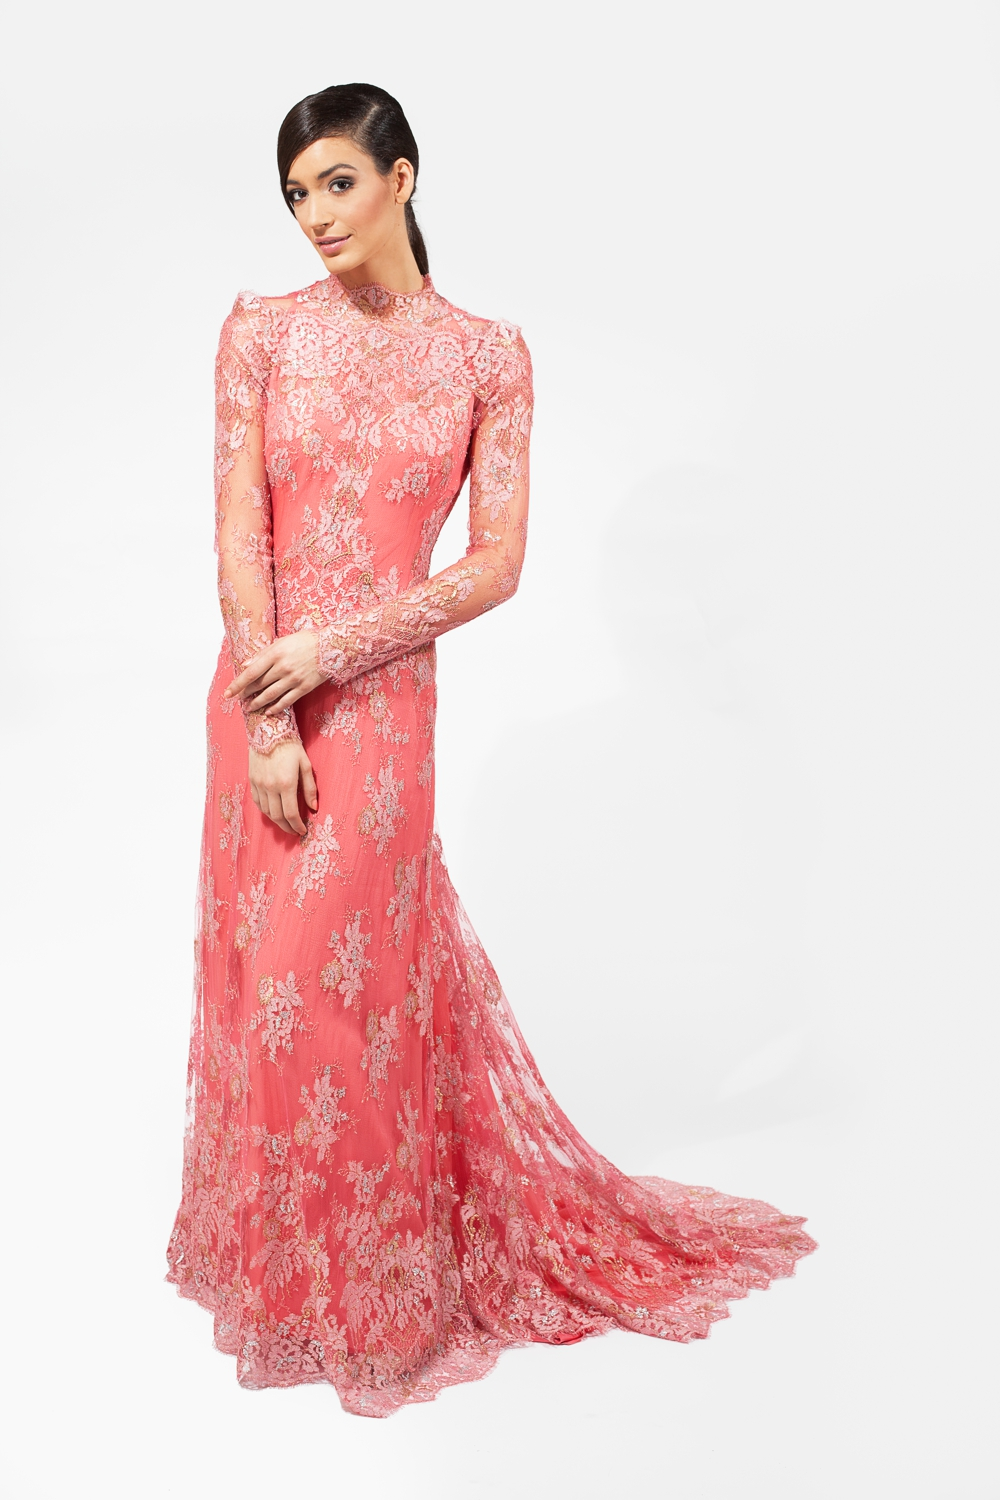 French lace couture gown in Coral